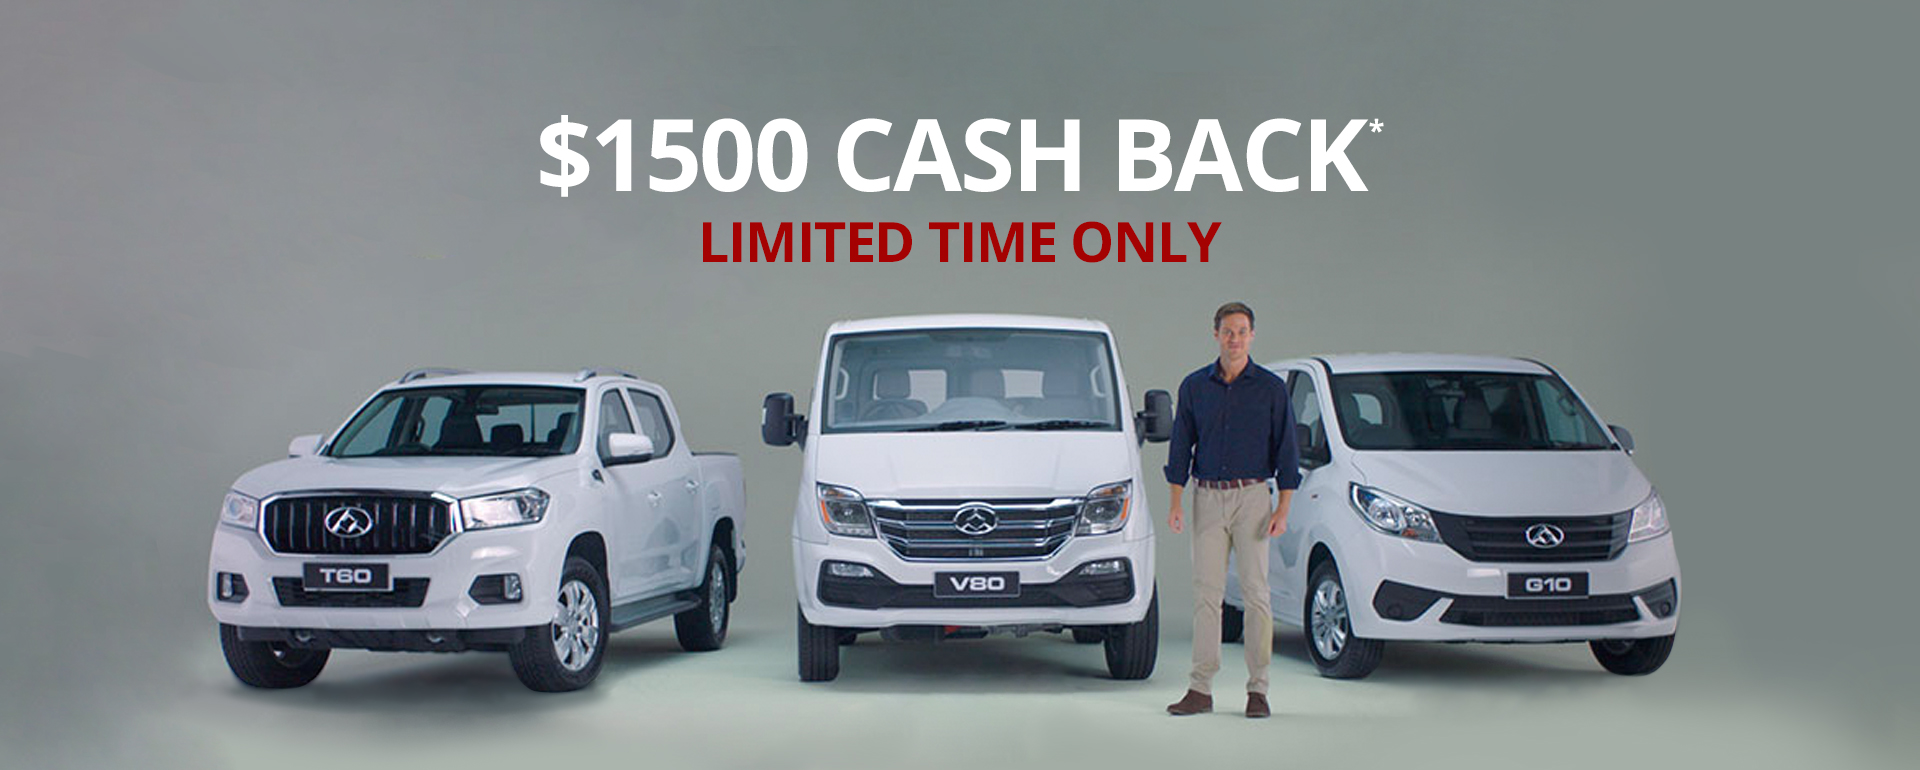 Take-advantage-of-the-ultimate-LDV-cashback-offer-and-claim-your-$1500-today-Come-down-to-our-John-Hughes-showroom-and-find-your-very-own-LDV